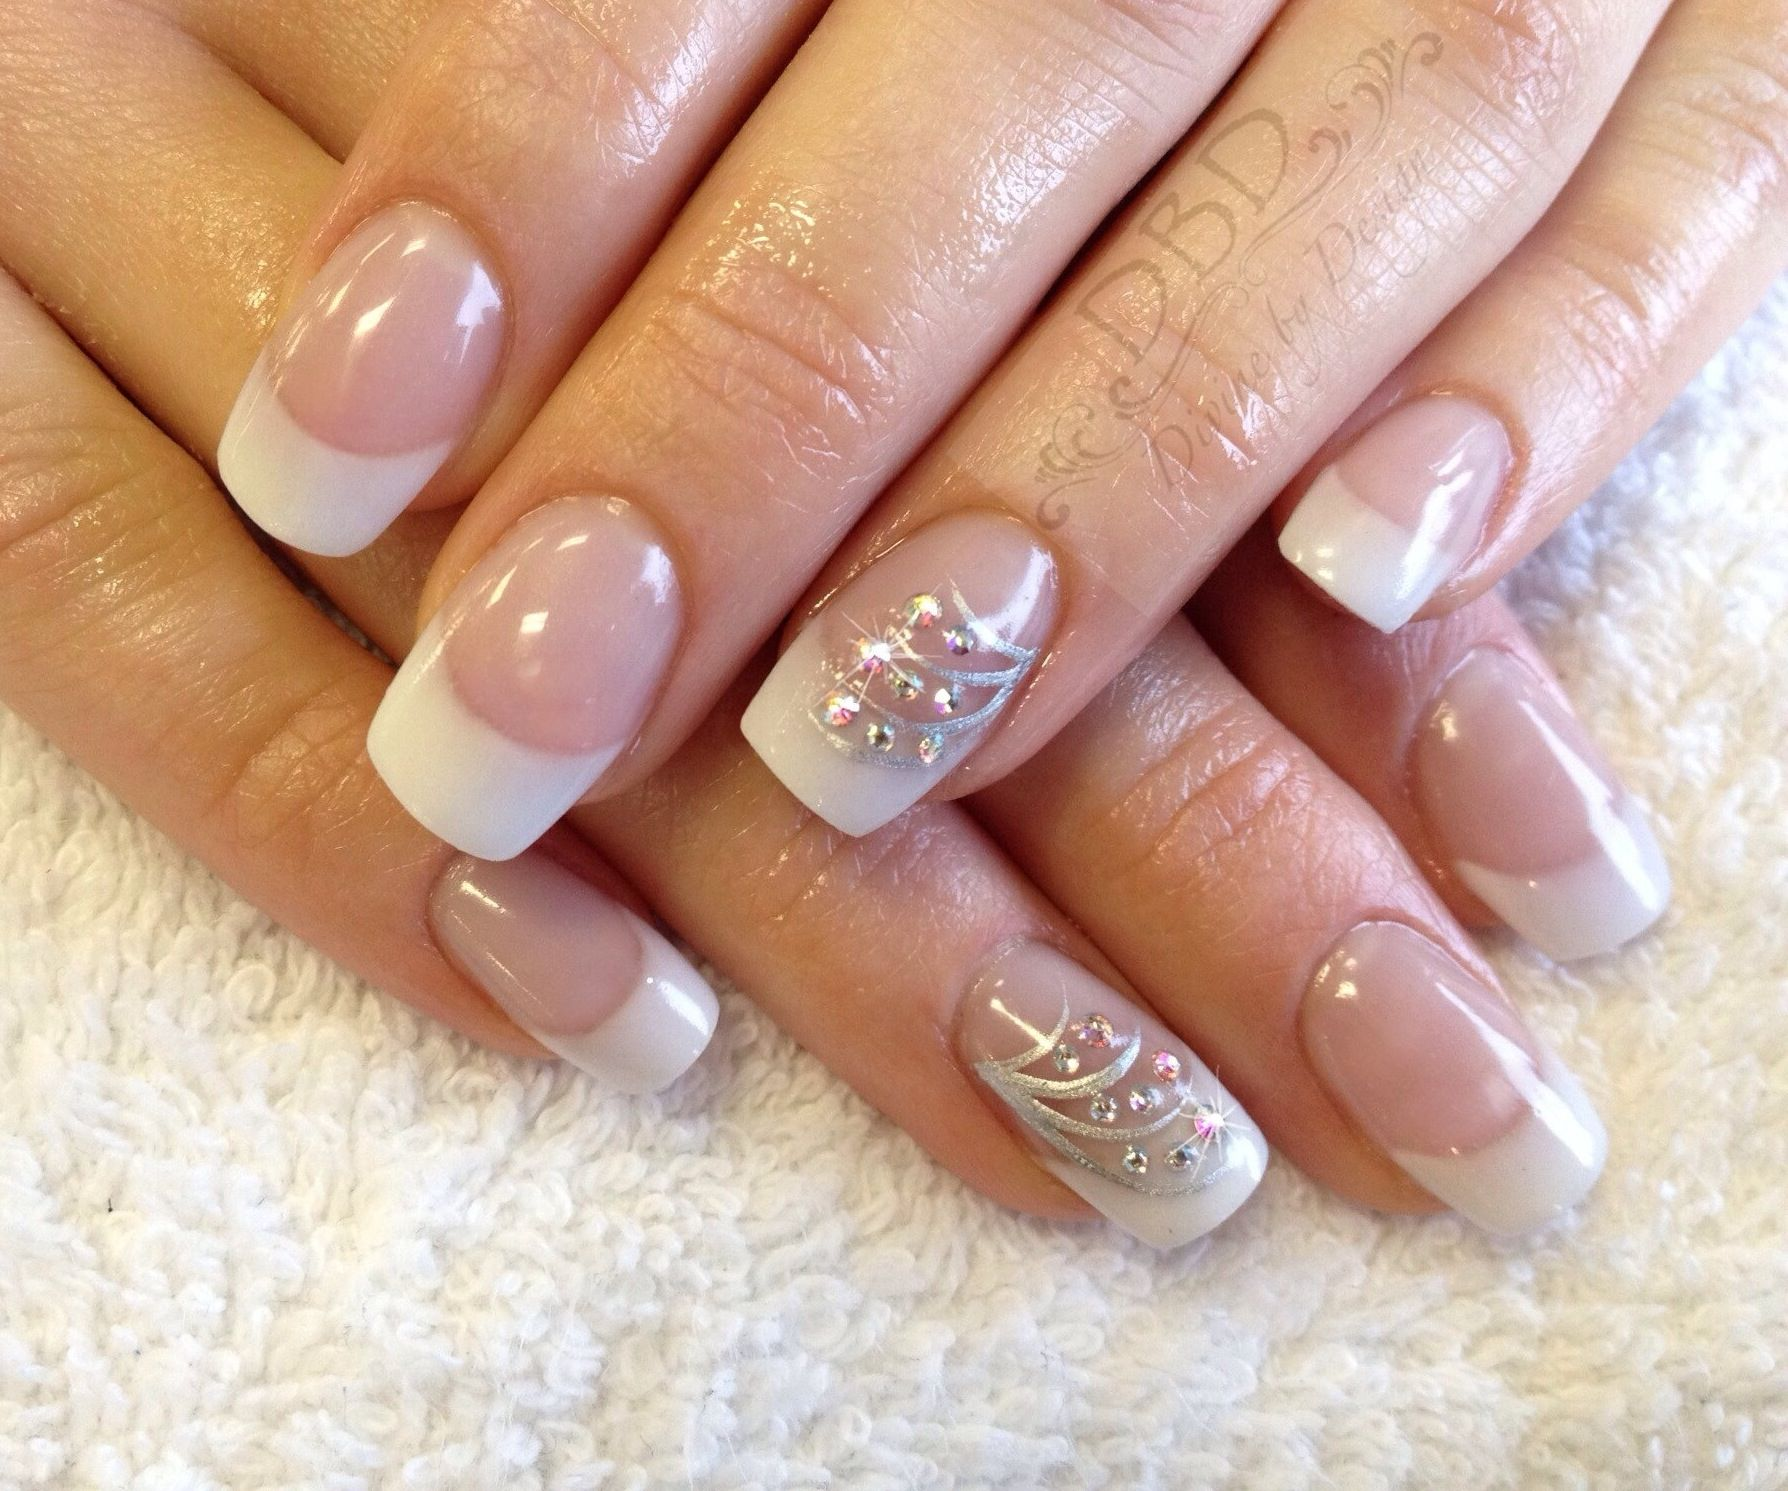 CND Sculpted L Forever French With Bespoke Swarovski And